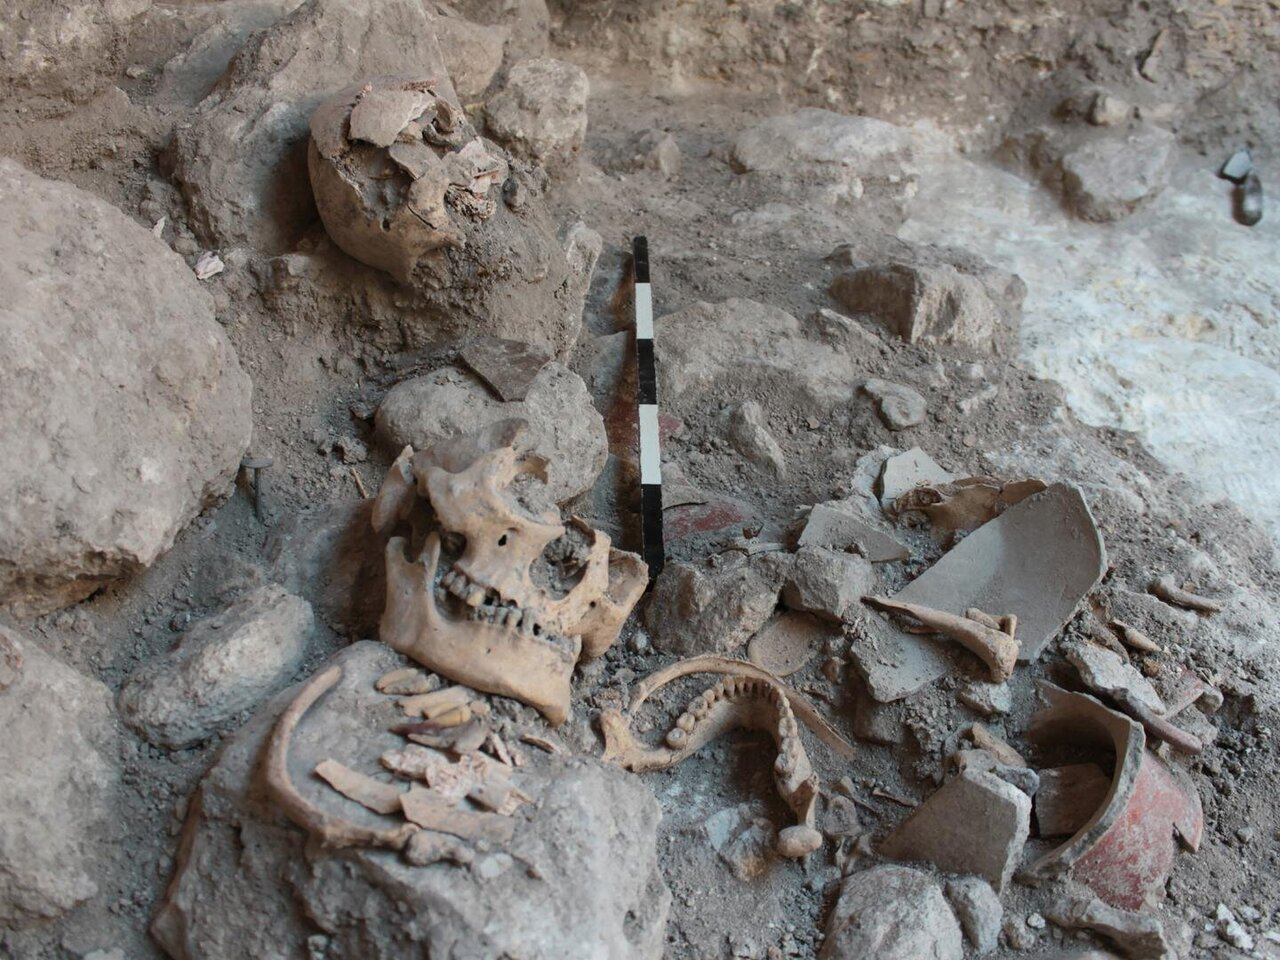 Isotope analysis points to Mayan prisoners of war